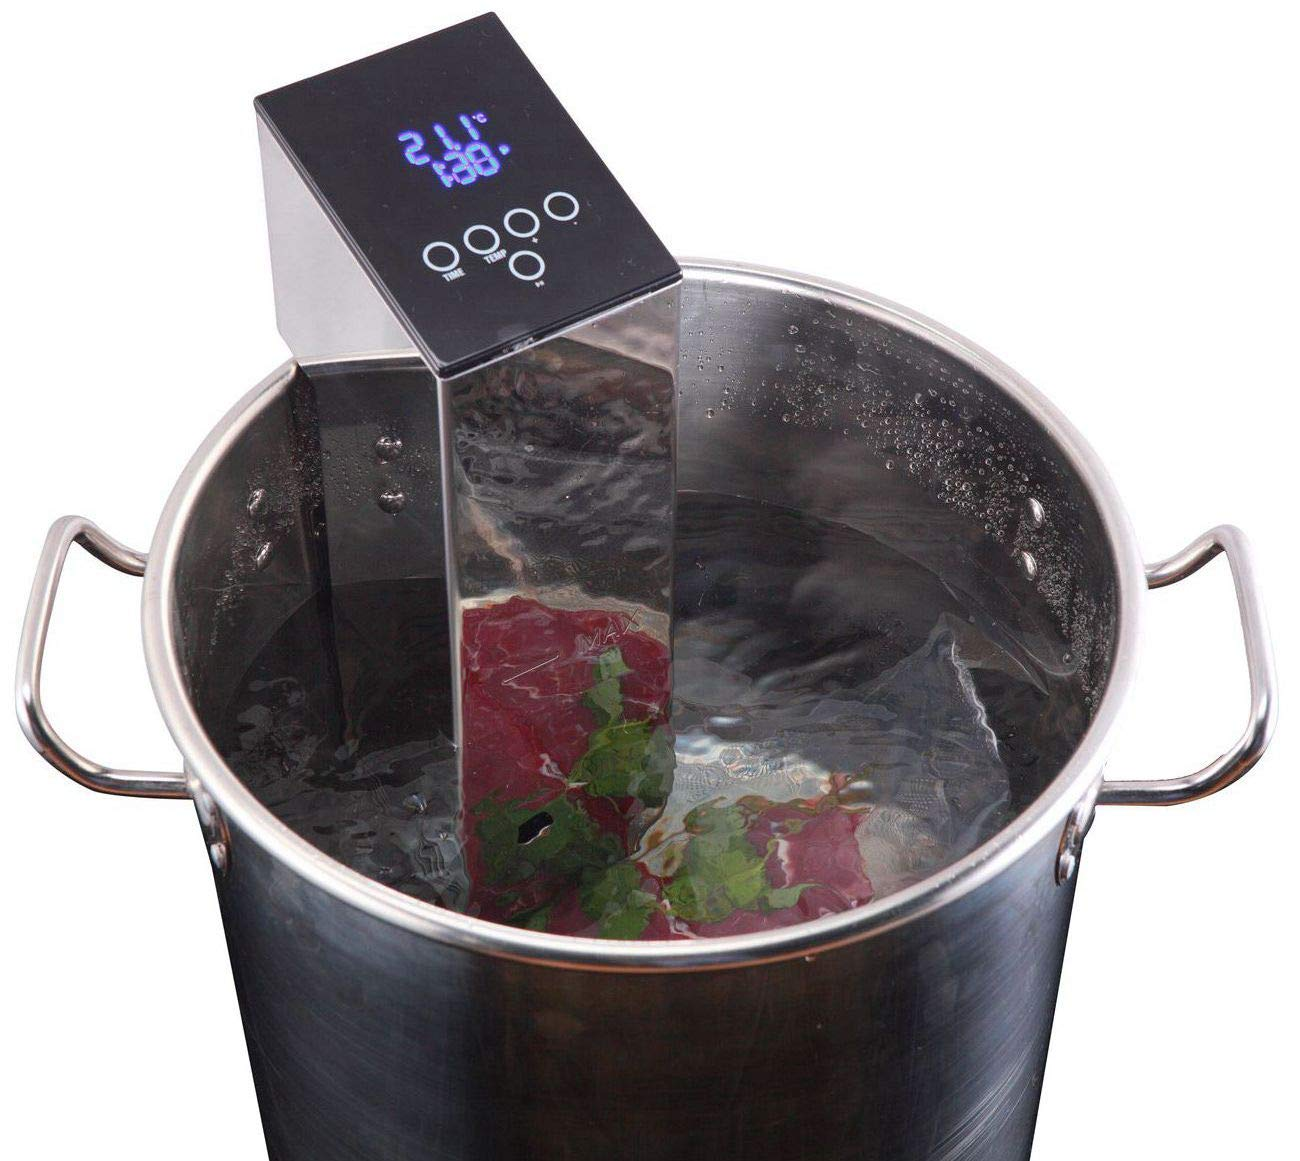 TINVOO Sous Vide Cooker,1100 Watts Thermal Immersion Circulator, Sous Vide Machine for Built-in Patented H-B-C system w/Accurate Temperature Control, Programmable Digital Touch Screen, Chef Series Fo